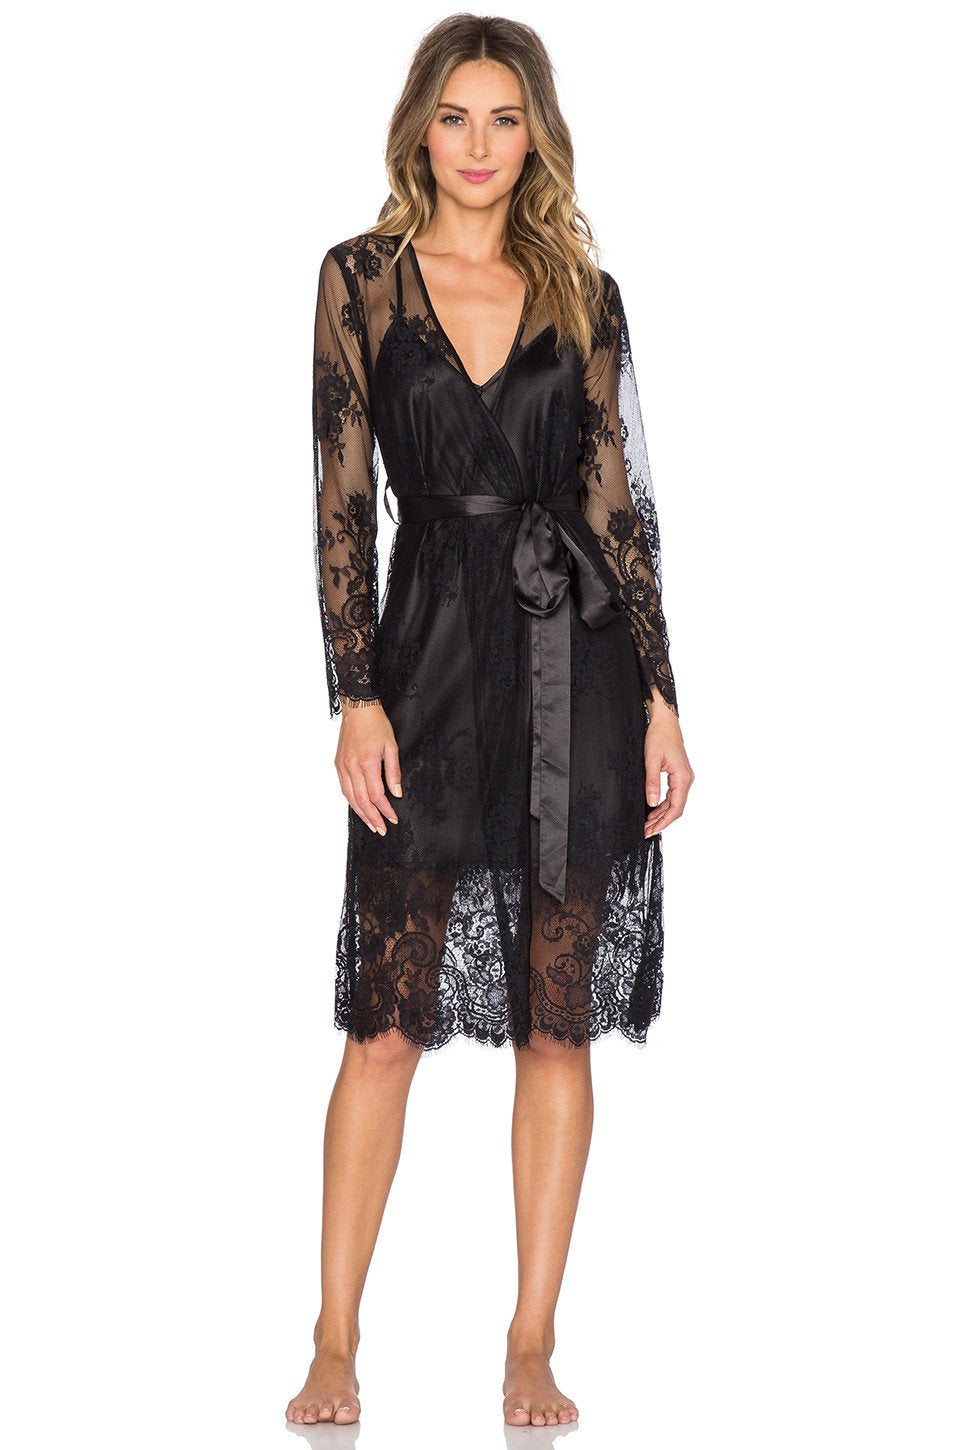 Dahlia Lace Robe - Kustom Label - 1